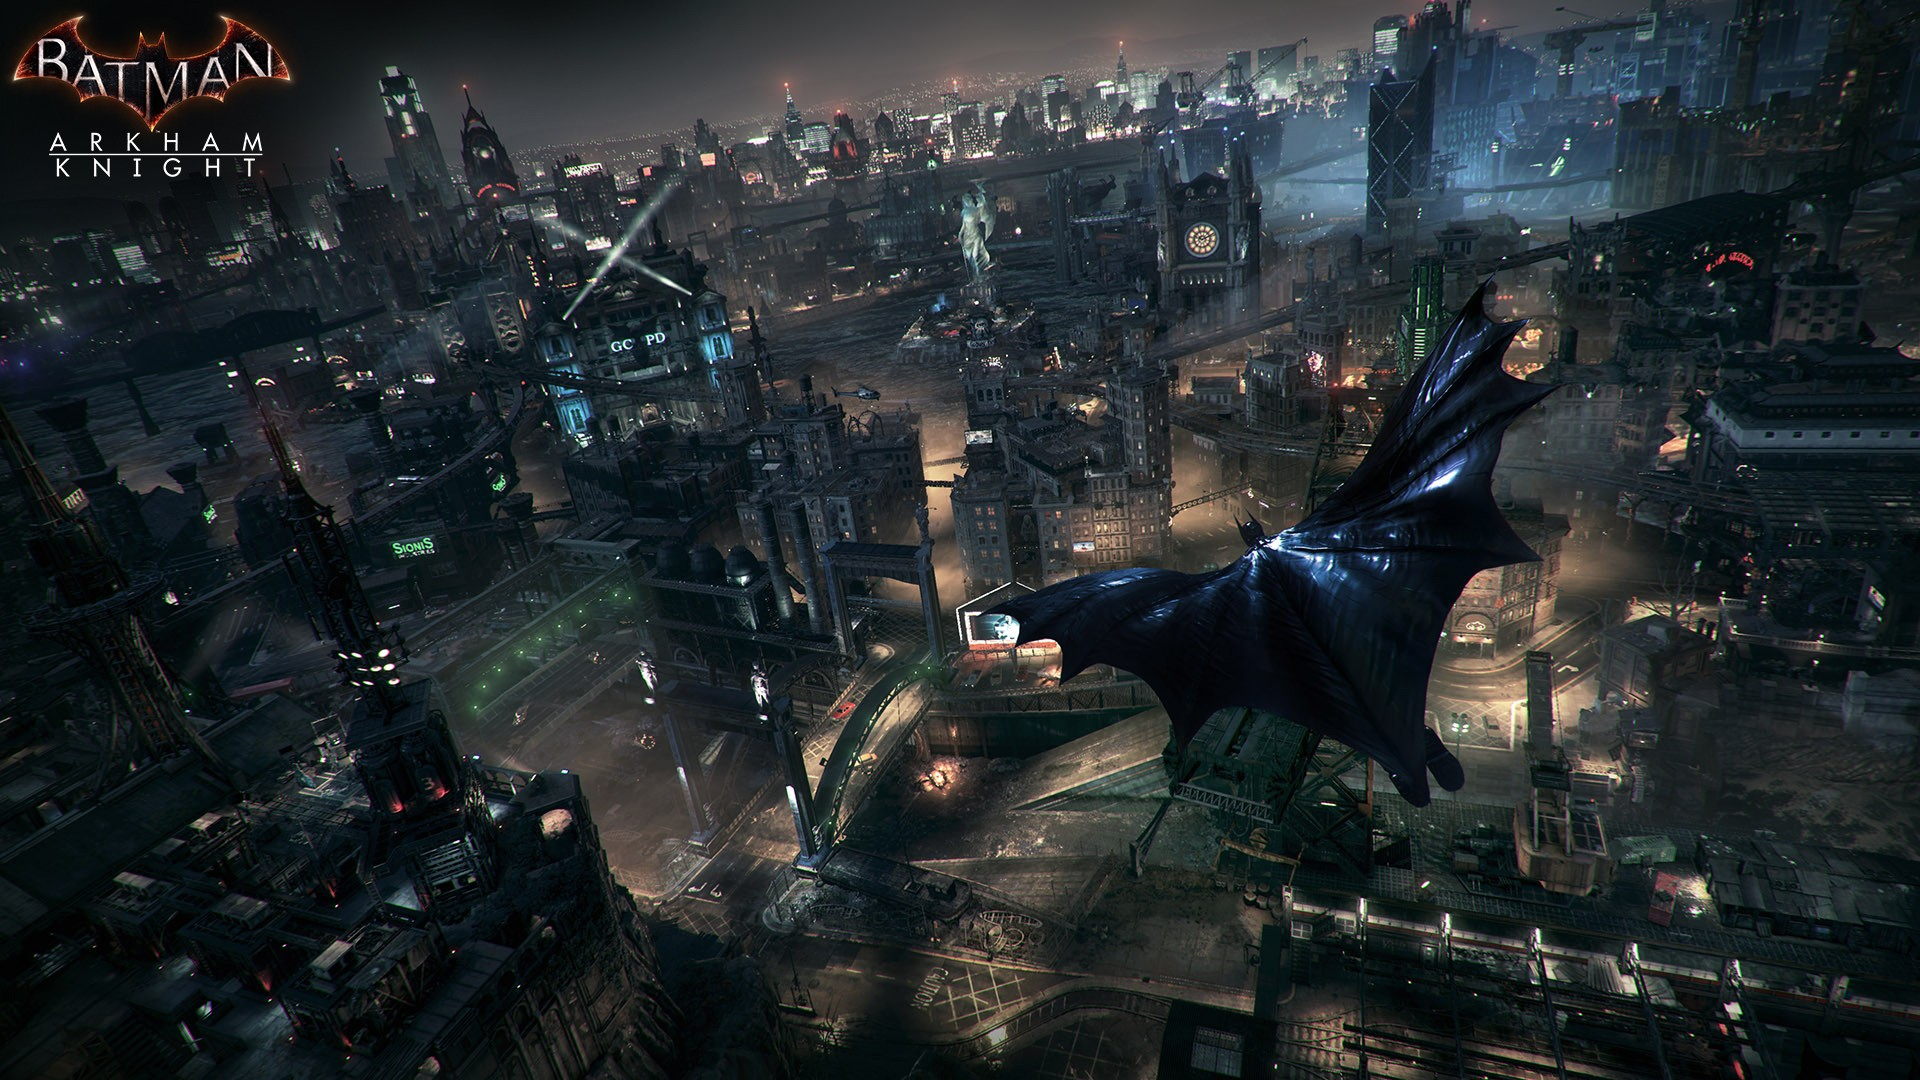 Gotham city is gigantic, beautiful, alive, and full of enemy aerial drones (which are fun to land on and explode) and watchtowers set up on skyscrapers.